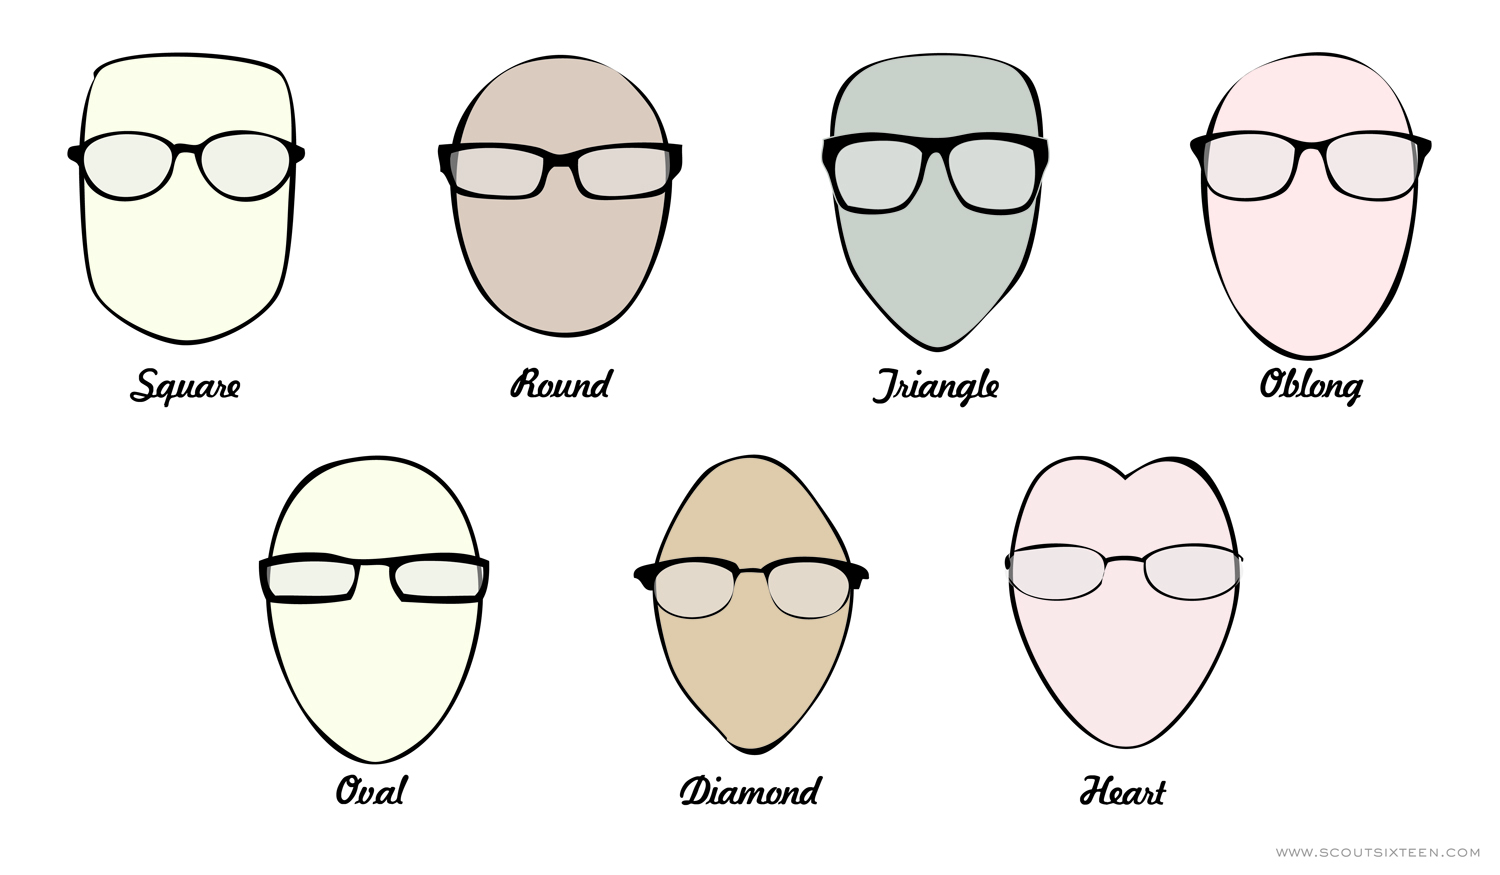 Images Of Eyeglass Frames For Round Faces : Eyewear Guide: How to Choose the Correct Frames For Your ...